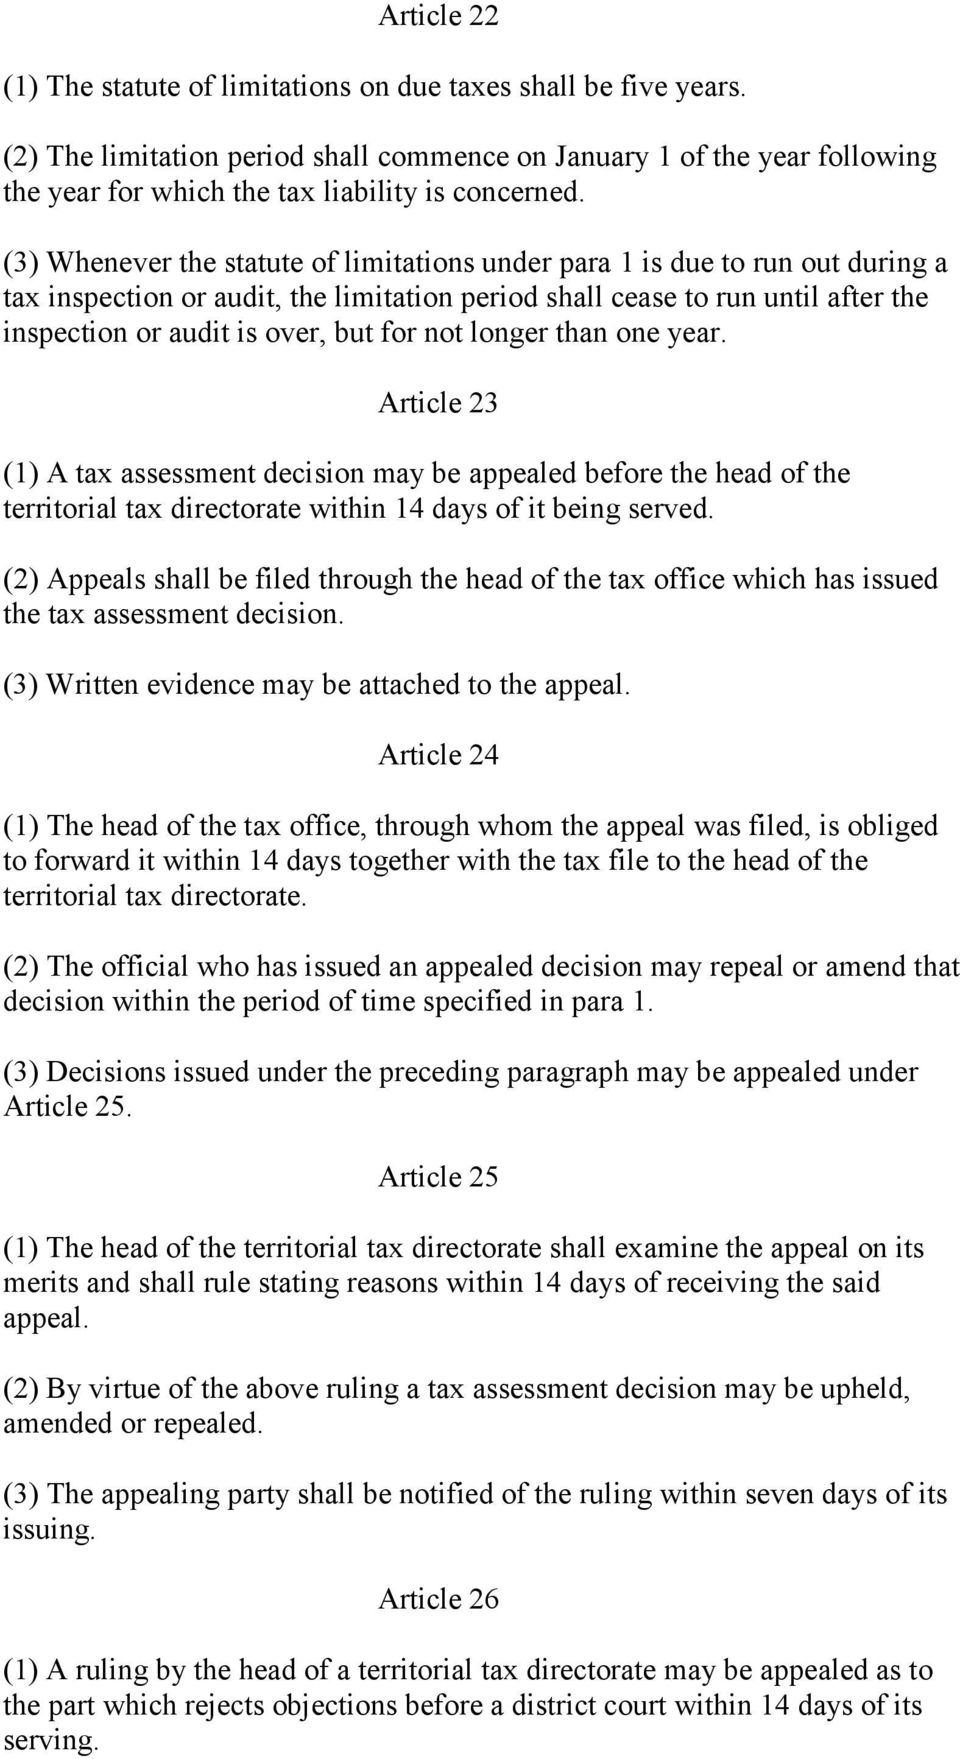 (3) Whenever the statute of limitations under para 1 is due to run out during a tax inspection or audit, the limitation period shall cease to run until after the inspection or audit is over, but for